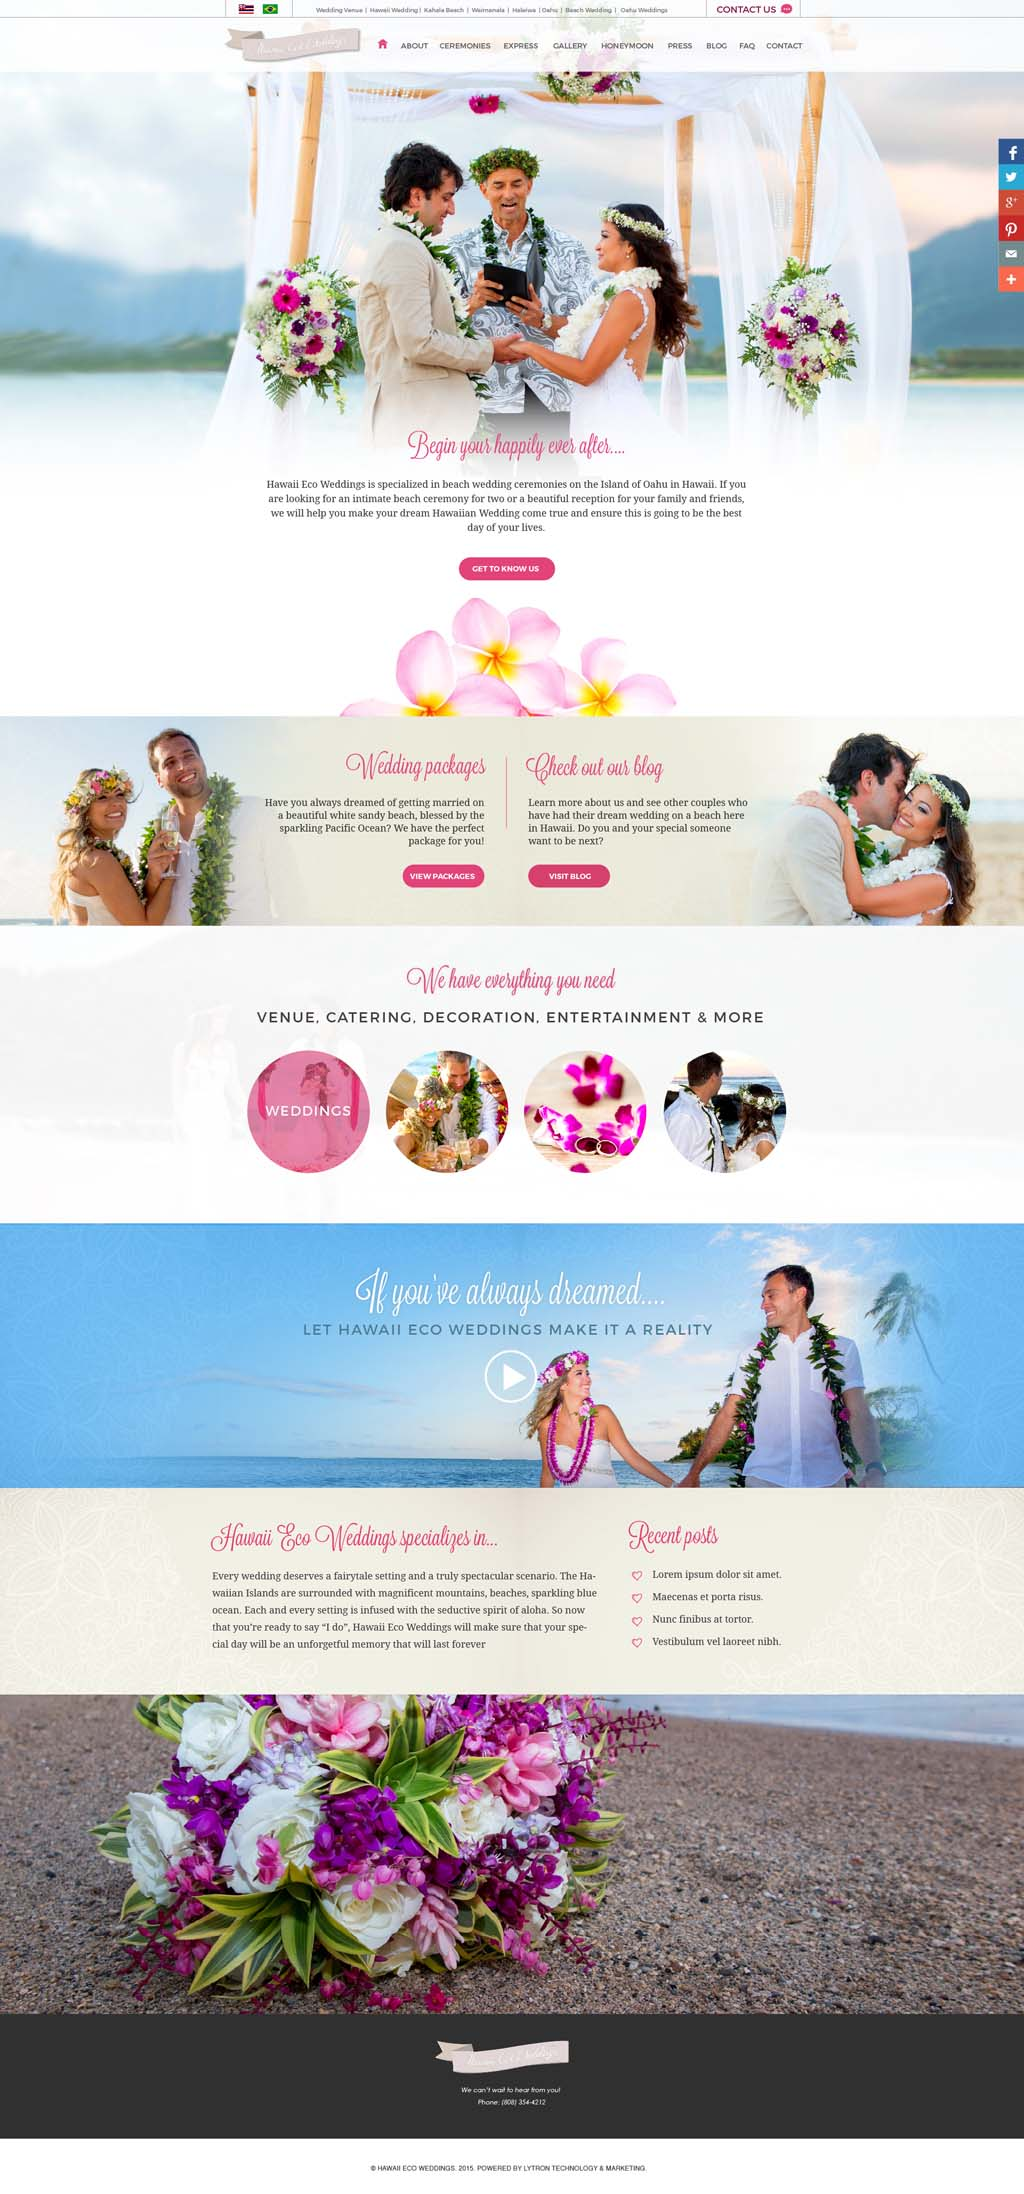 HawaiiEcoWeddings_ClientChanges